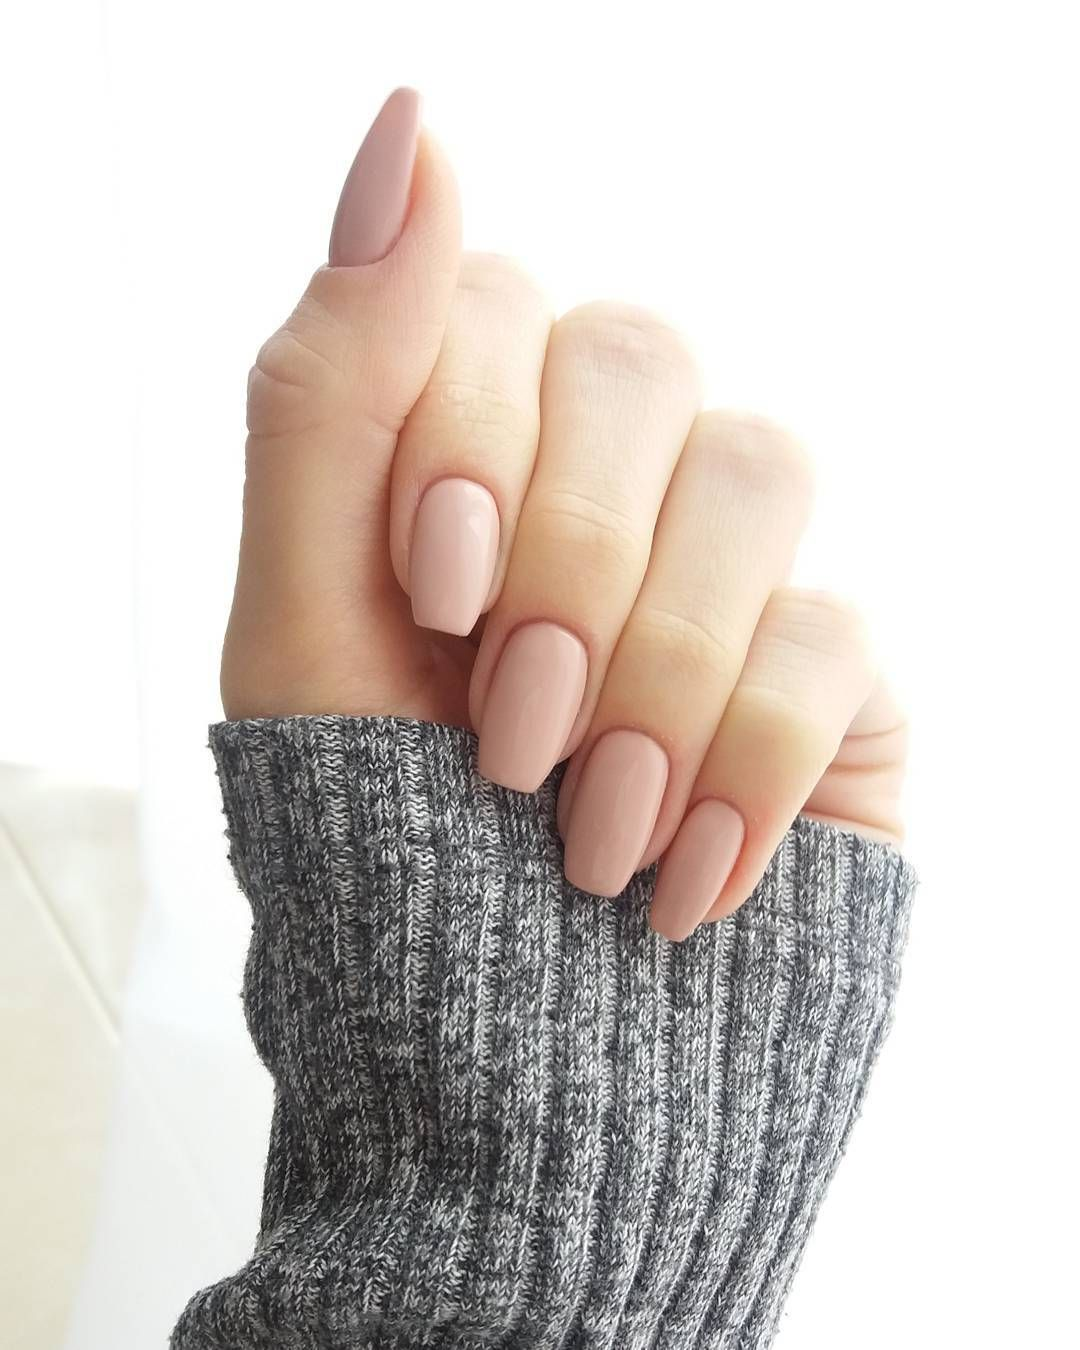 Nude nails for wedding day nails pinterest nails nude nails